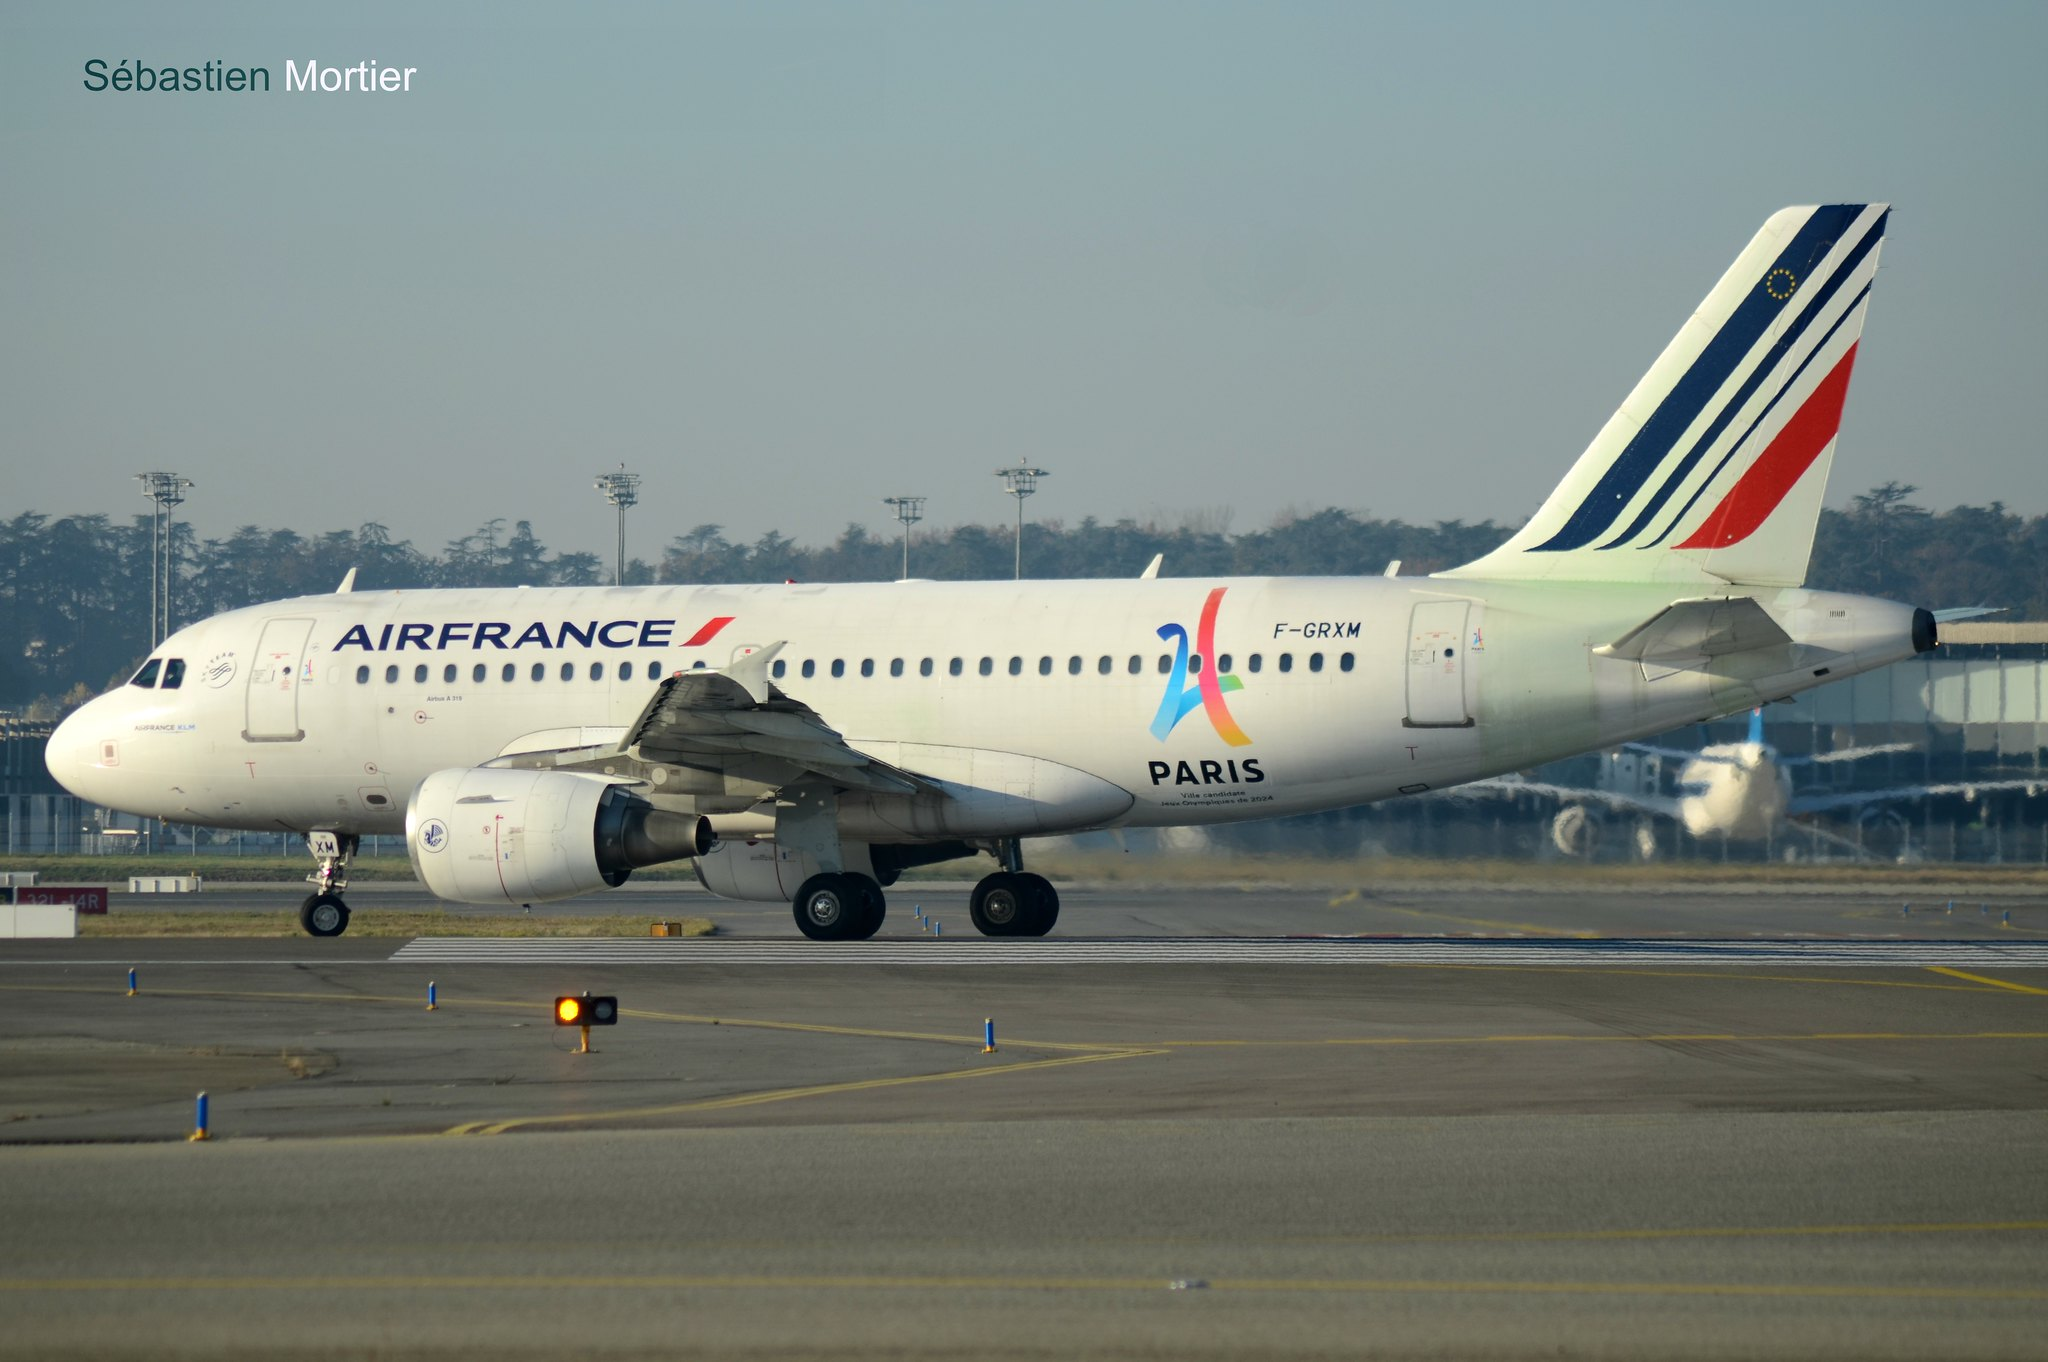 319.111 AIR FRANCE F-GRXM 2961 PARIS 2024 03 12 16 TLS